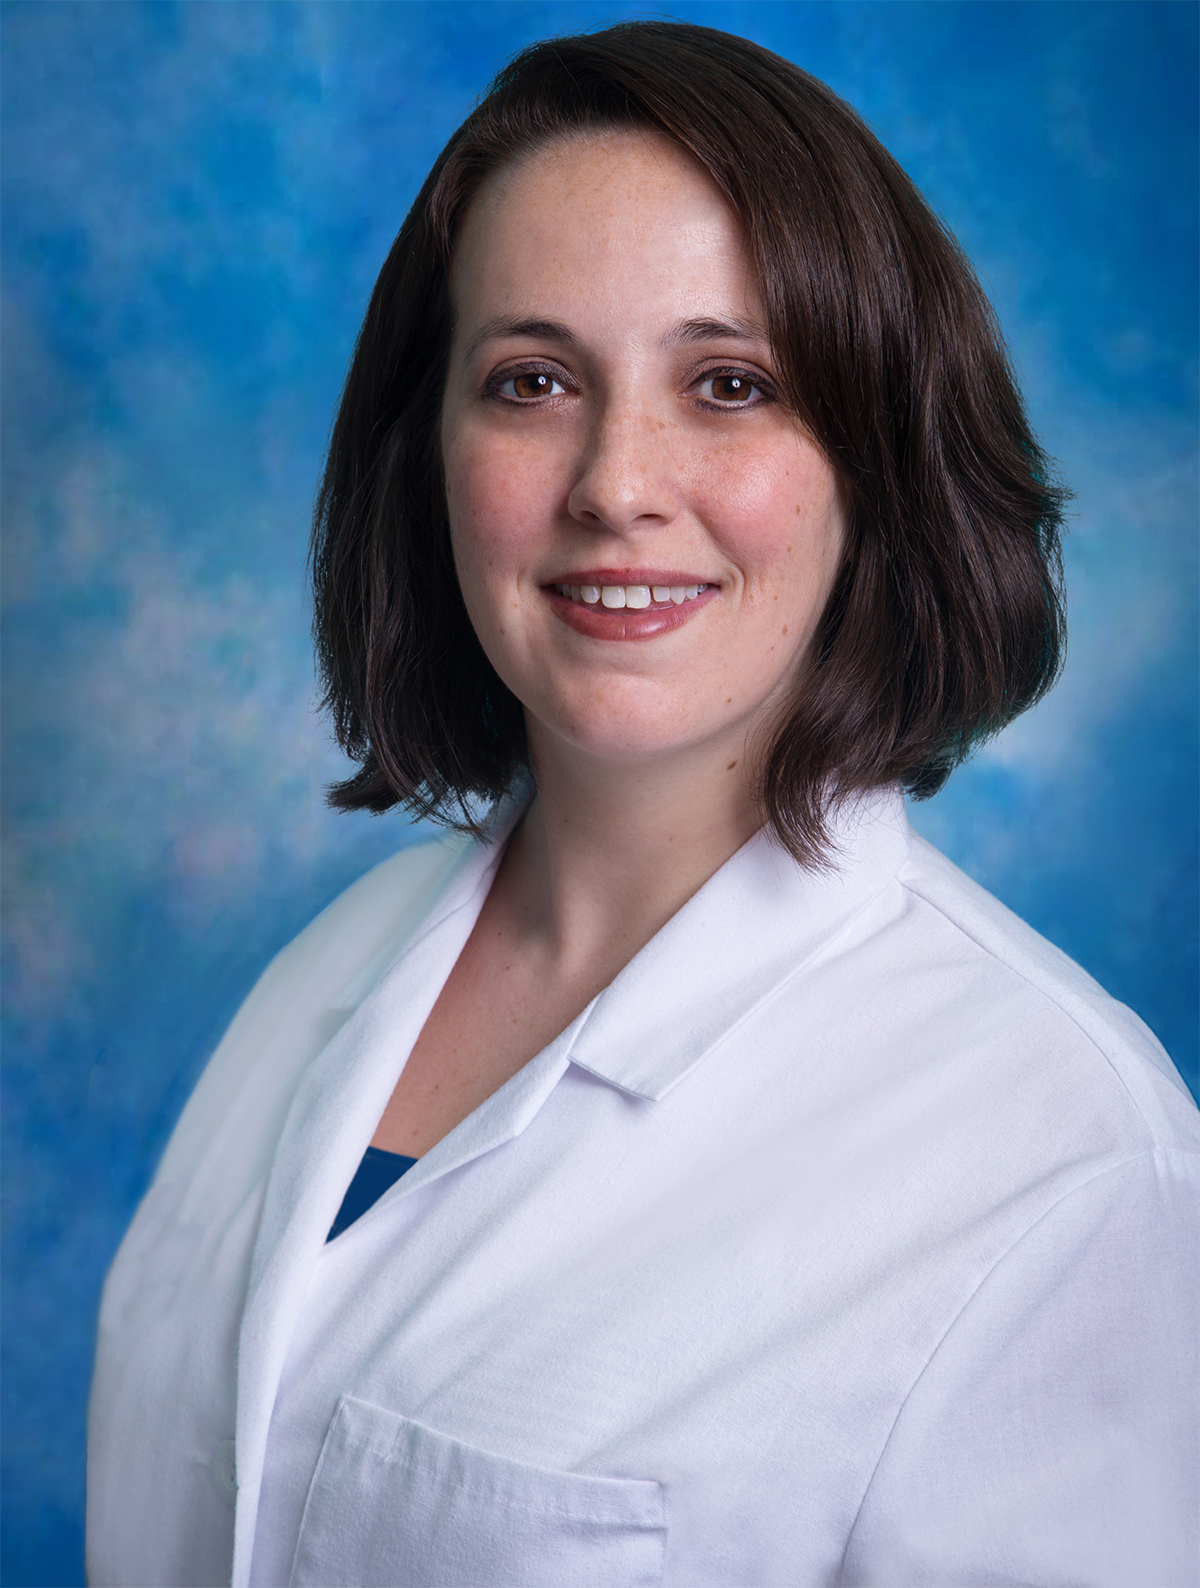 Dr. Lena Johnson, M.D., Primary Care Physician, Family Doctor, Complete Care Medical Director